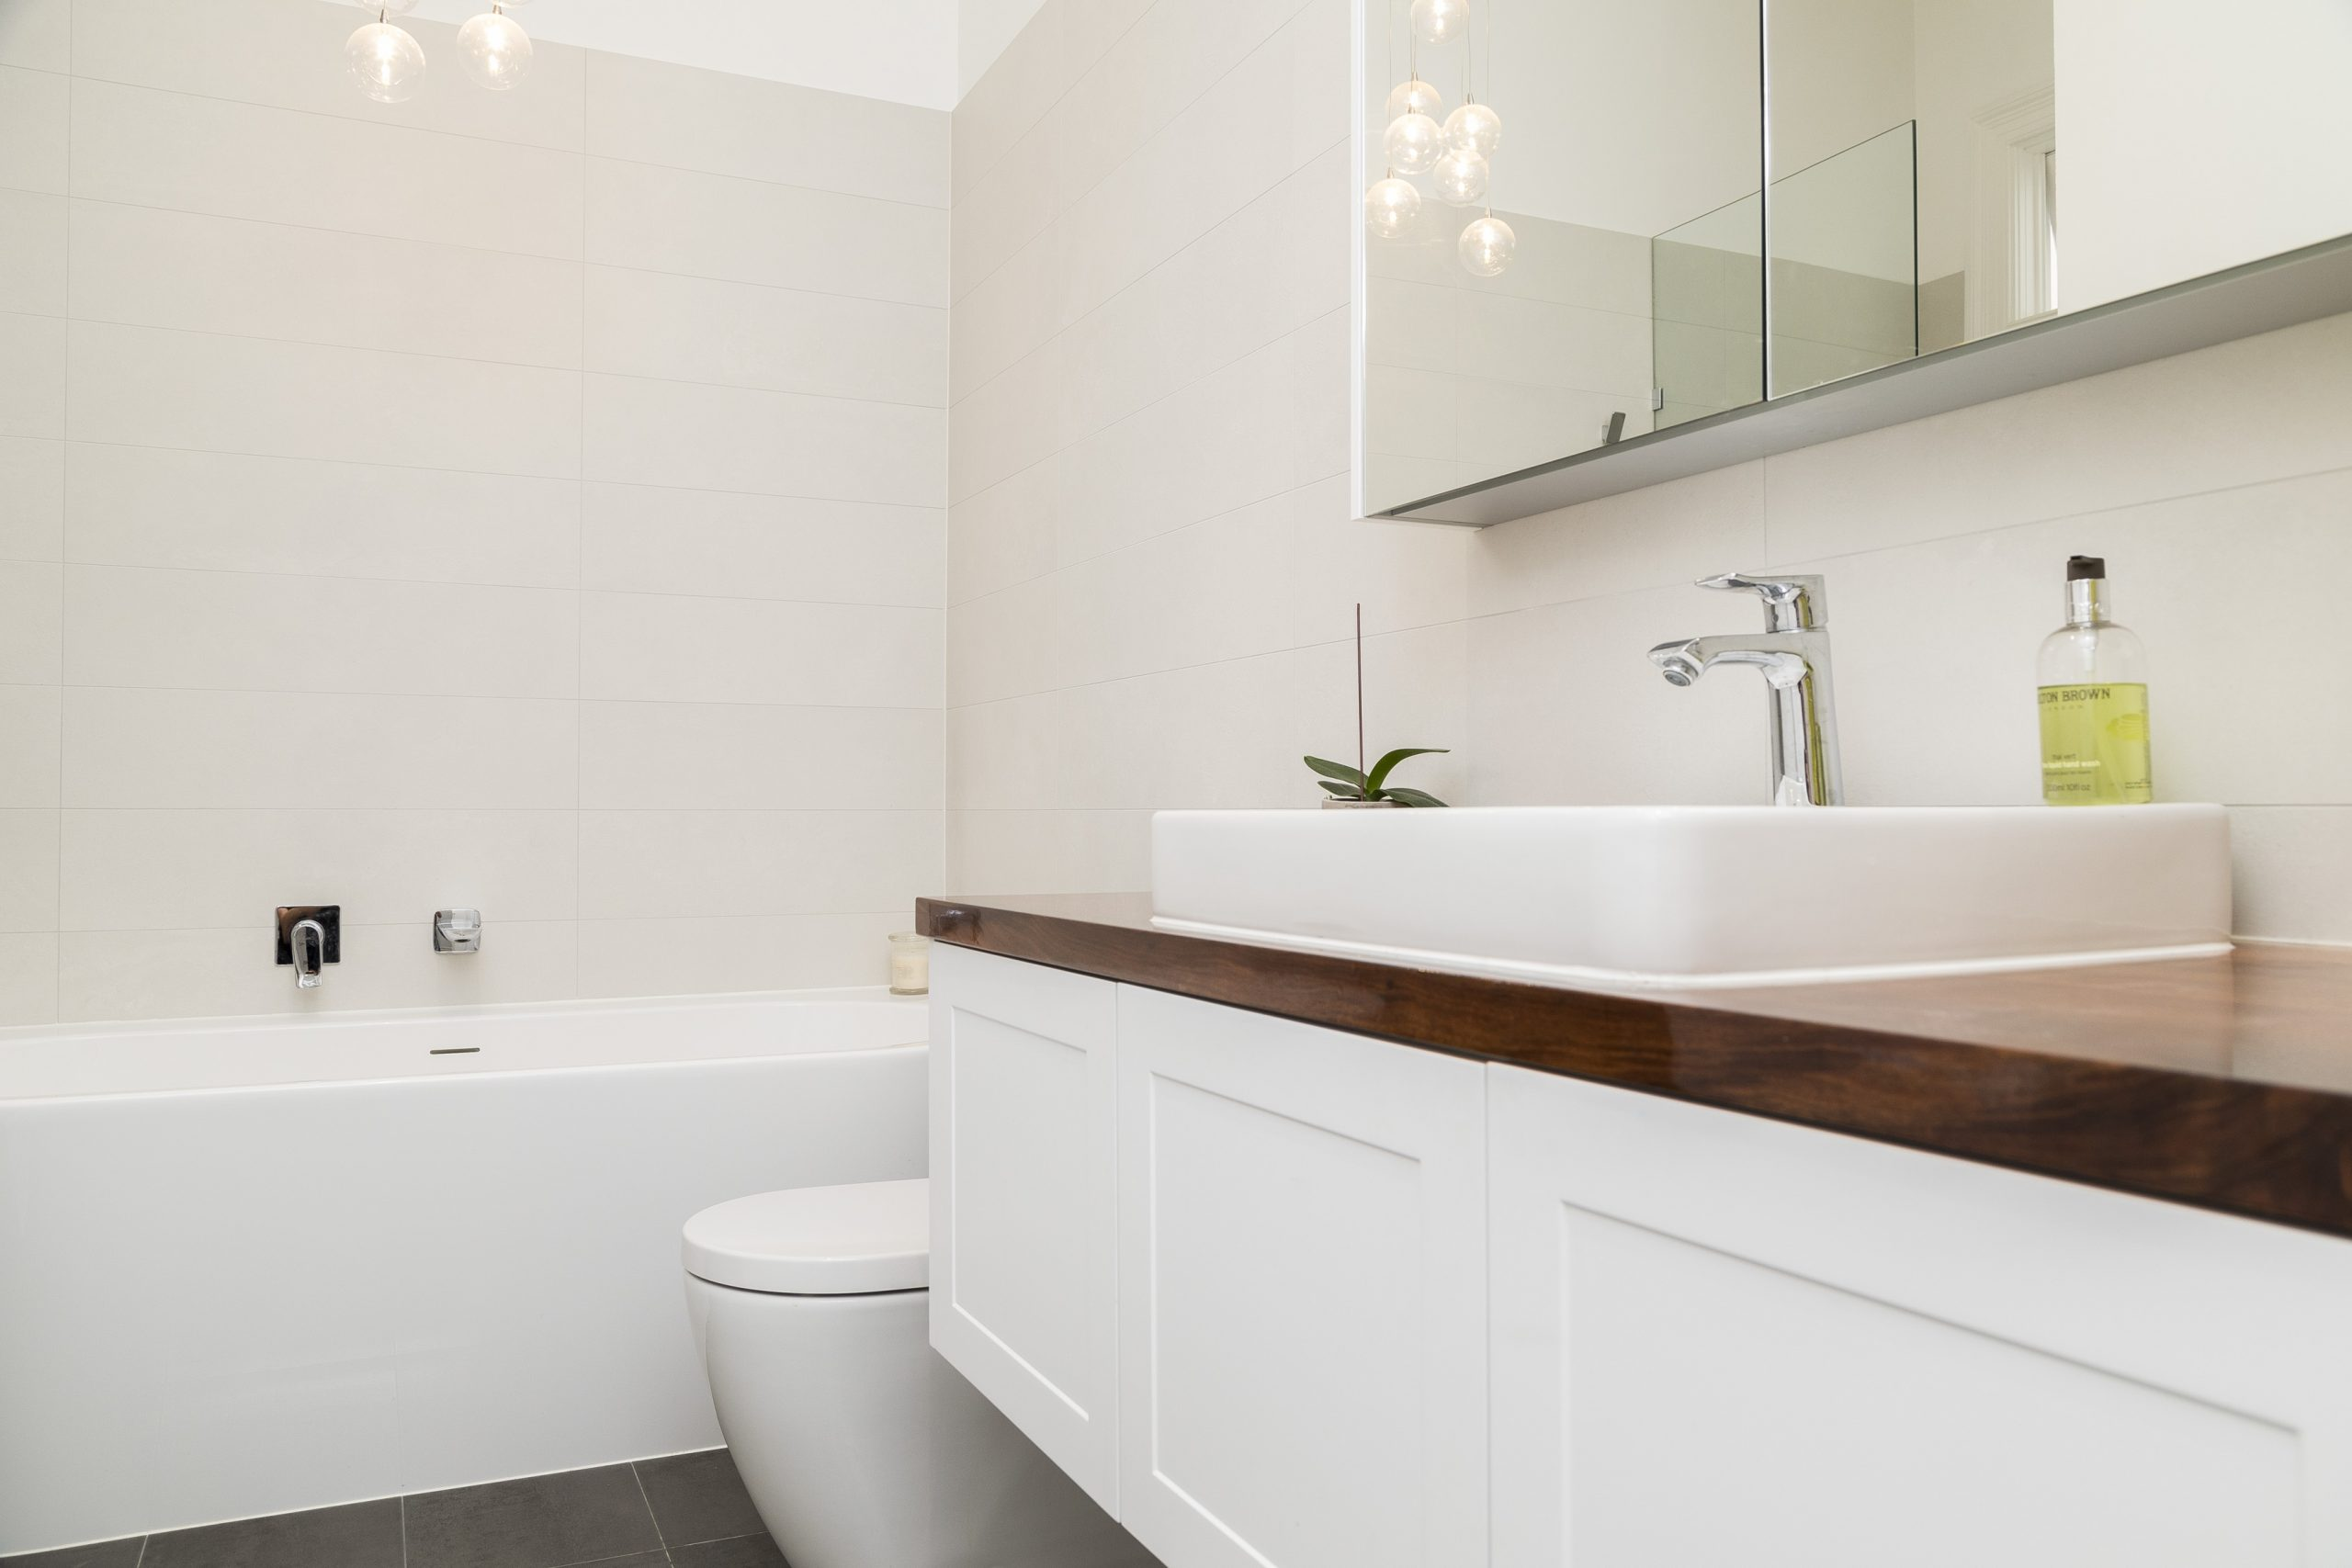 What Are Best Budget Home Renovation Tips